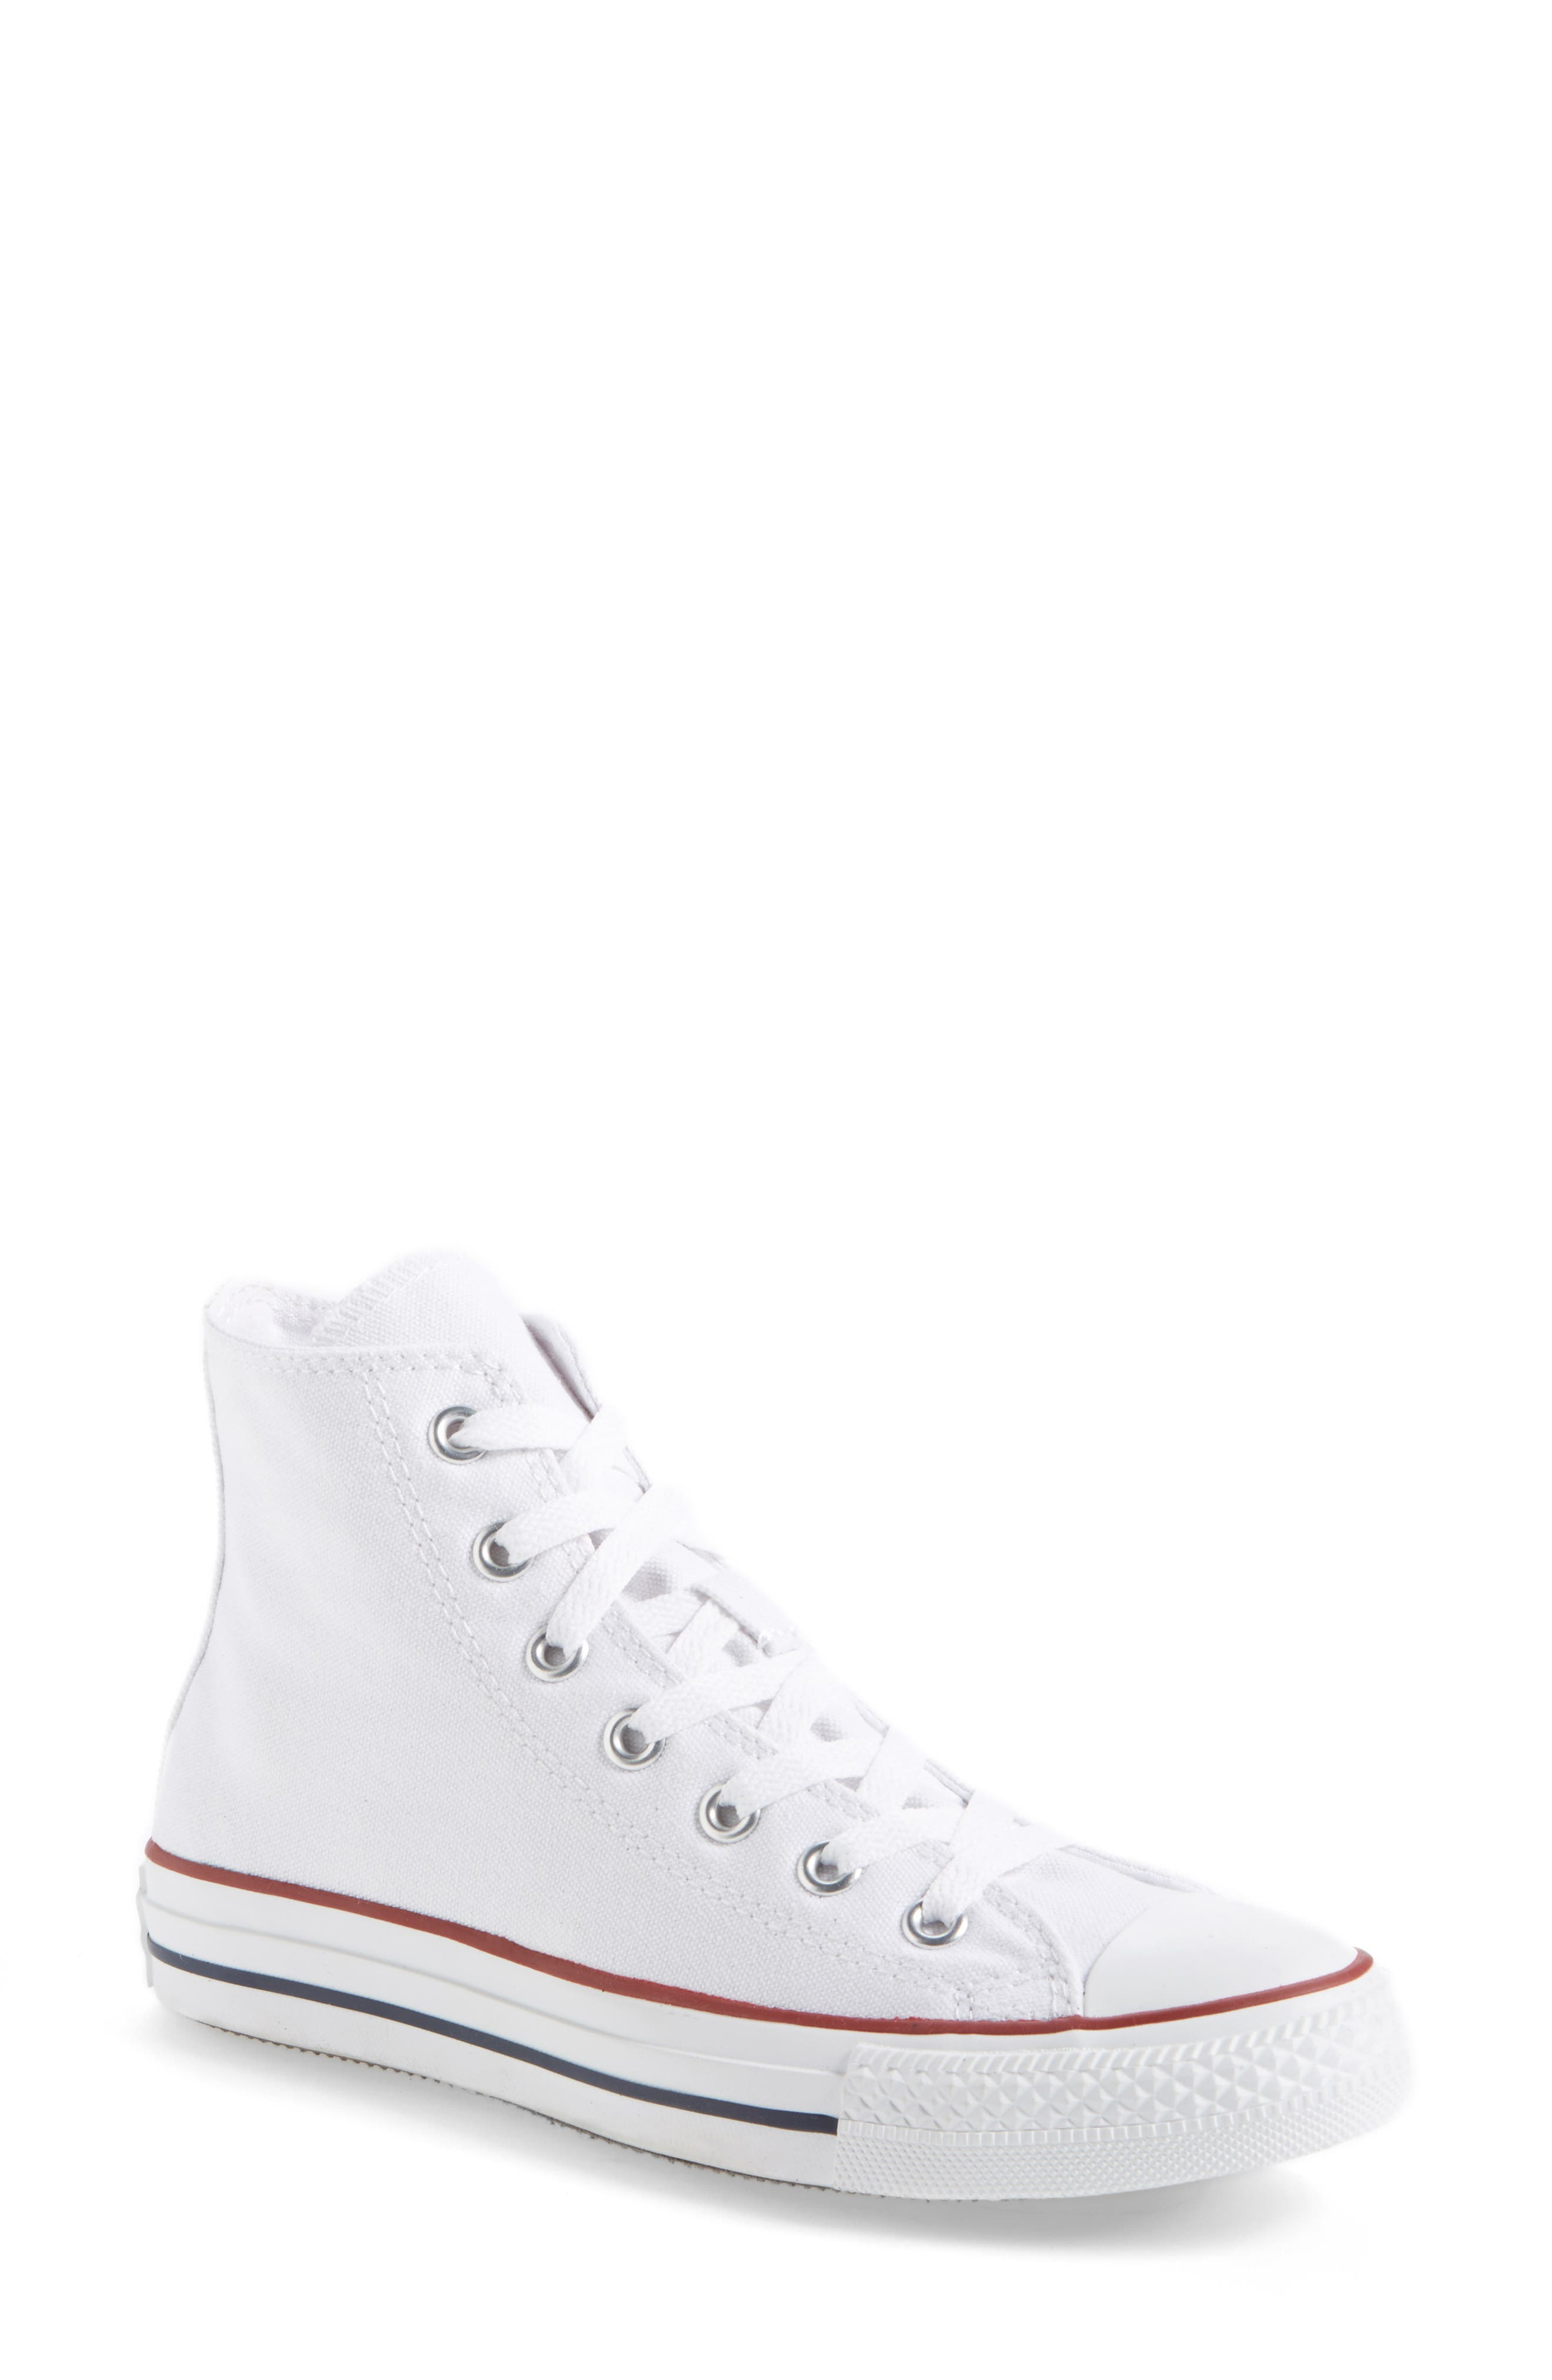 CONVERSE Chuck Taylor<sup>®</sup> High Top Sneaker, Main, color, OPTIC WHITE